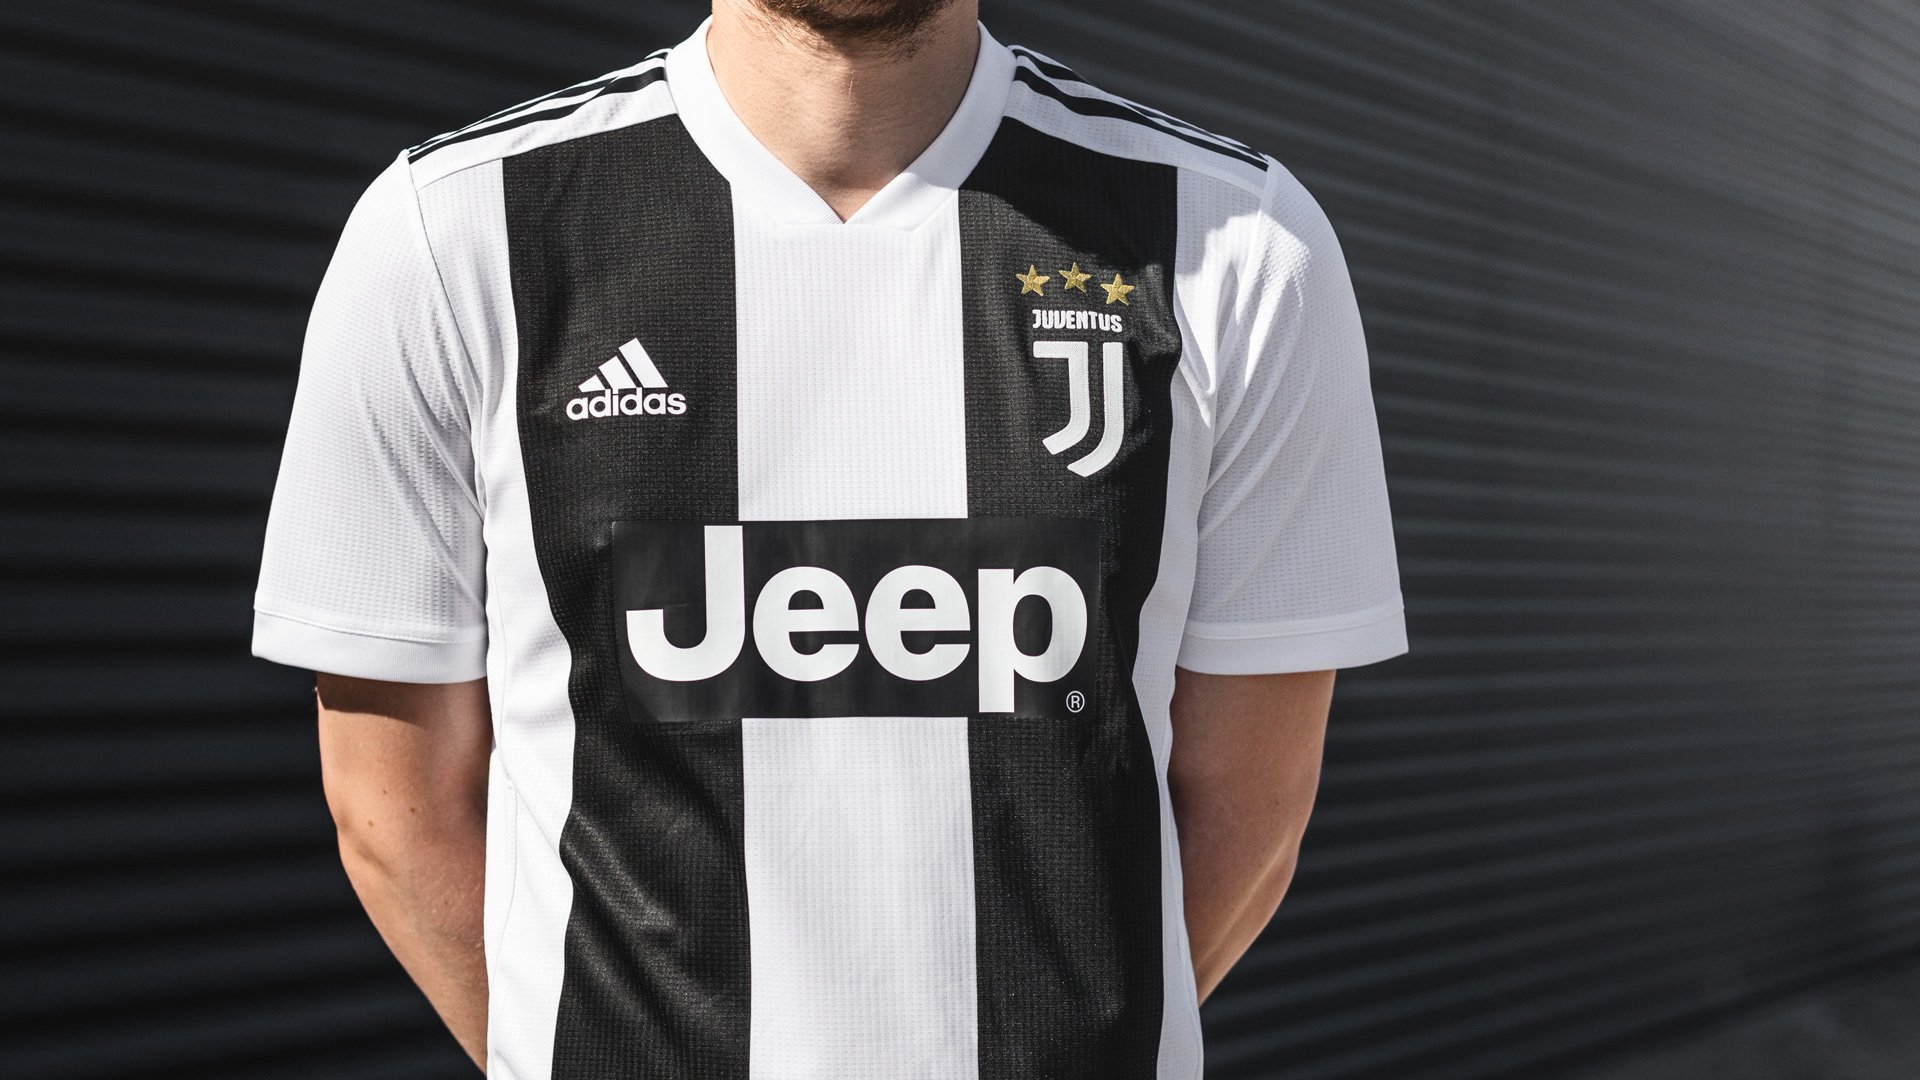 huge selection of bd9b9 7ce9f adidas launches new Juventus home kit